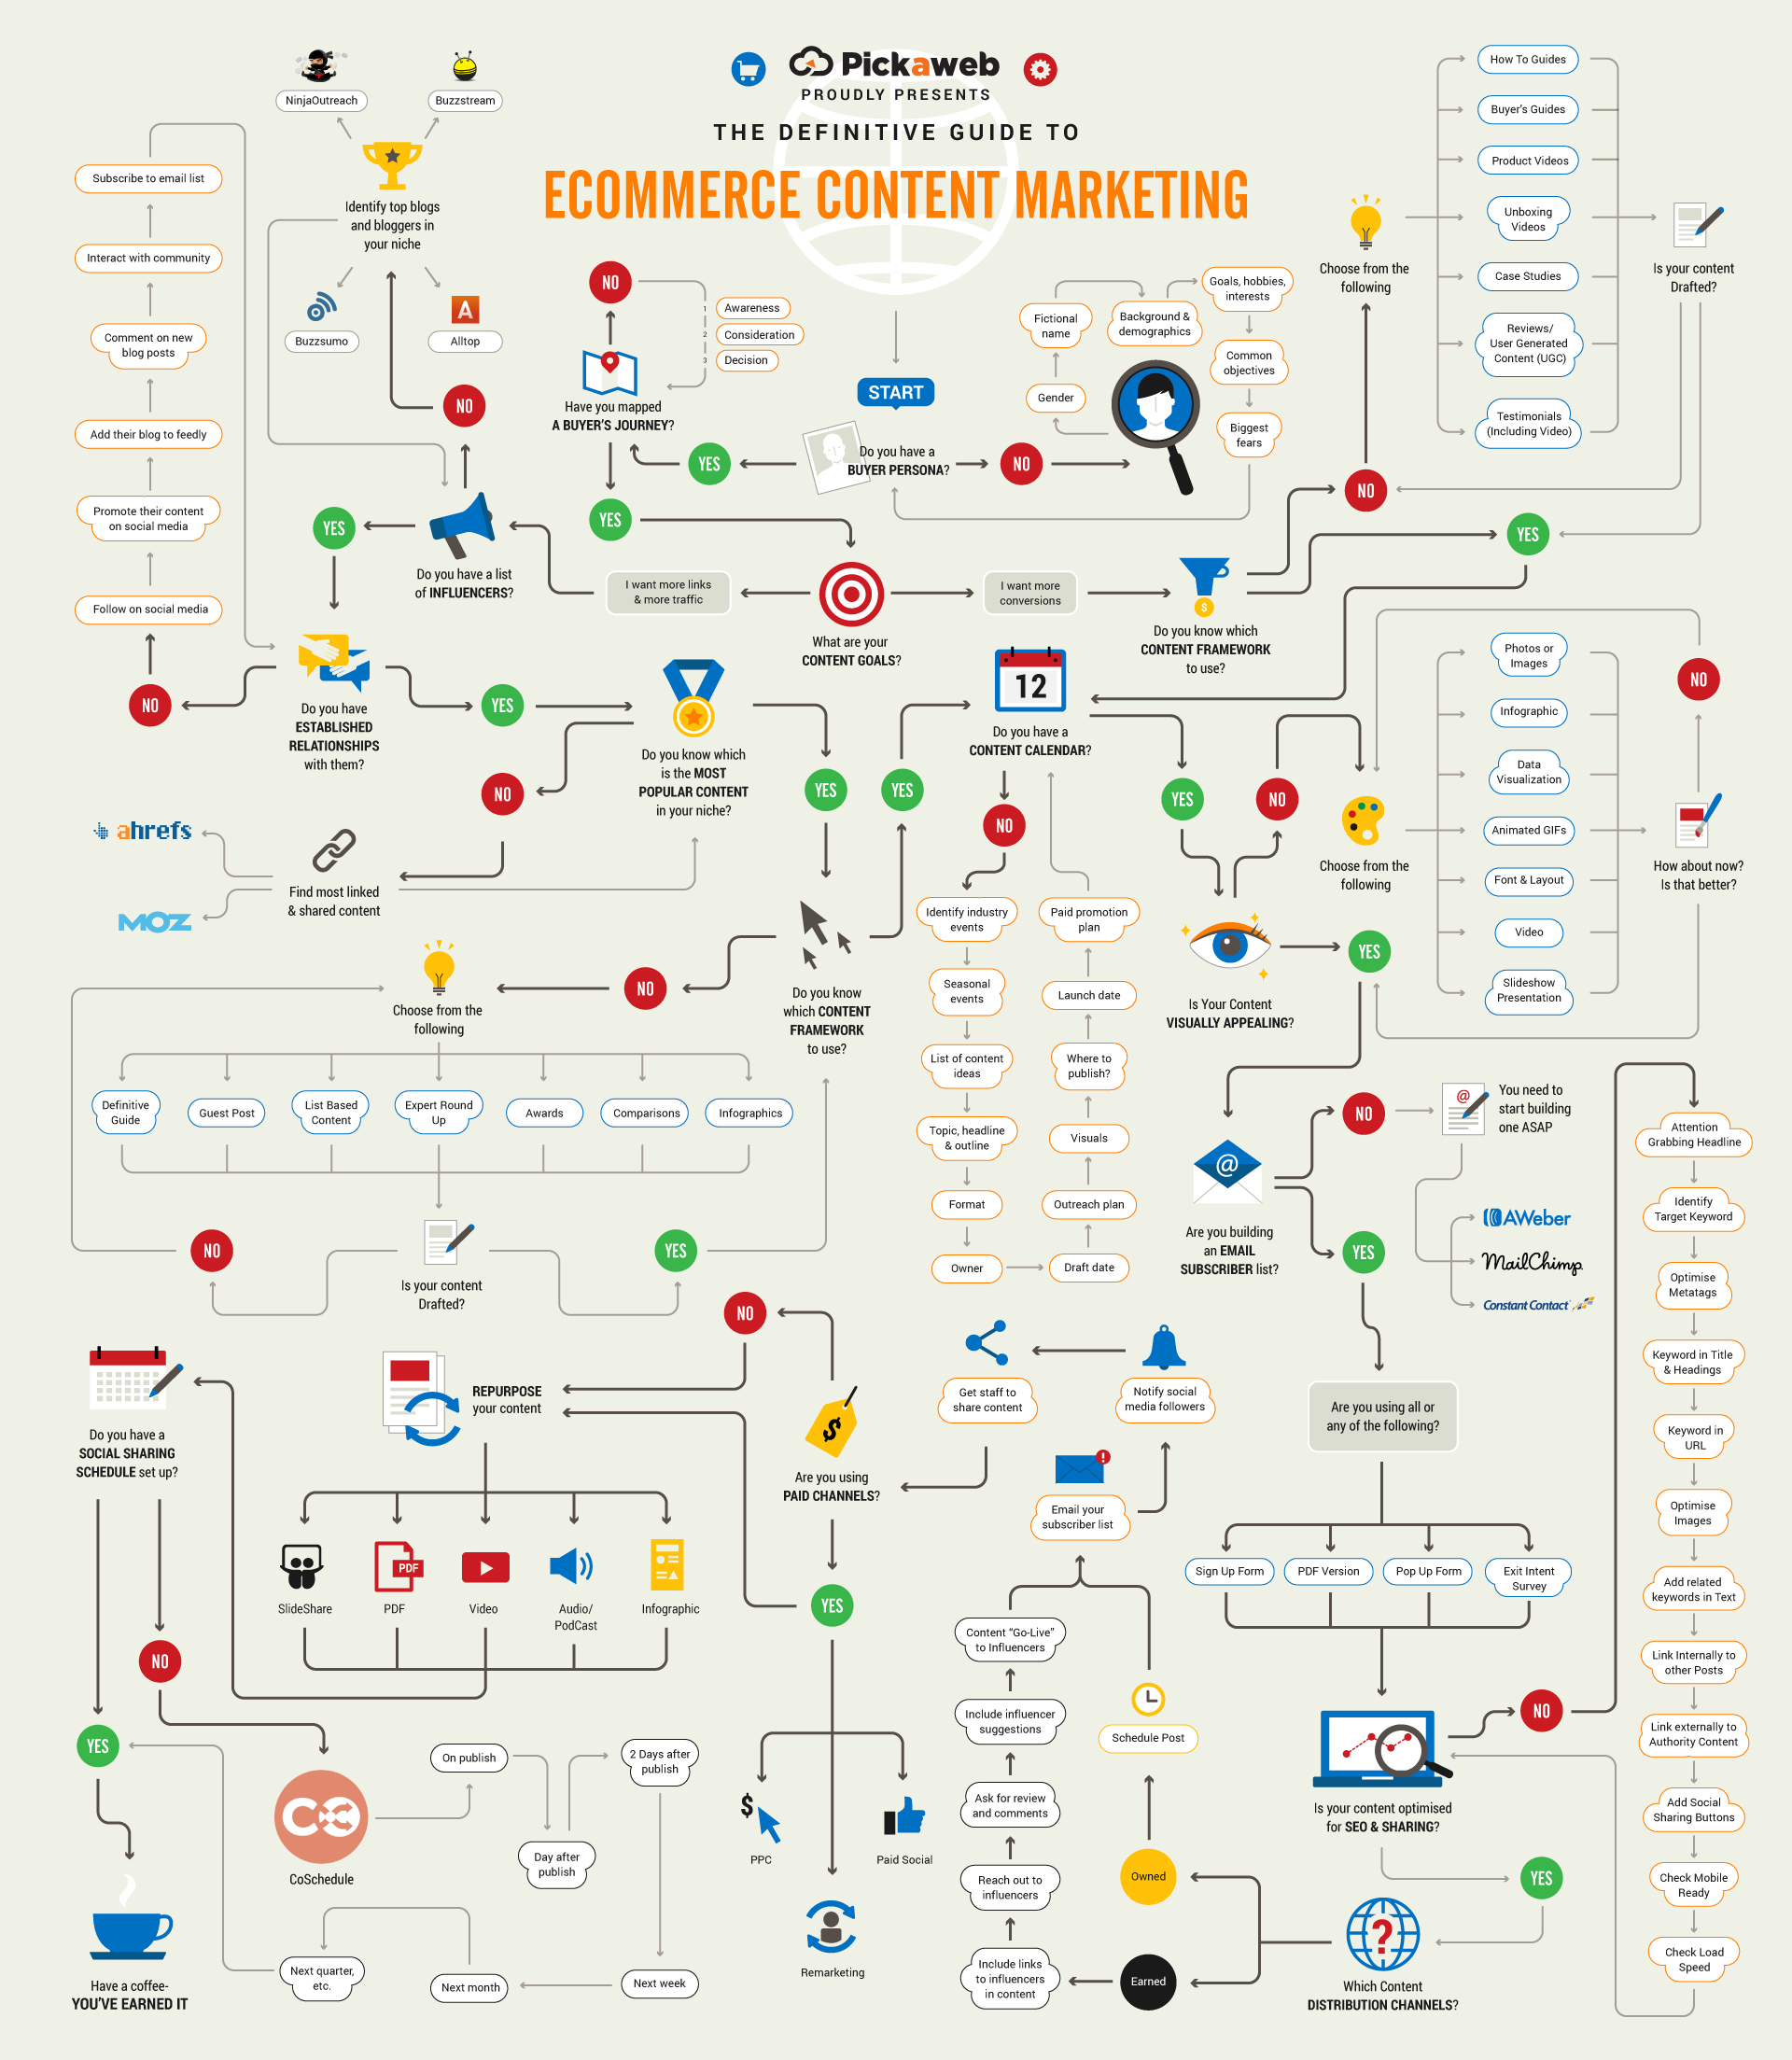 The Definitive Guide to eCommerce Content Marketing